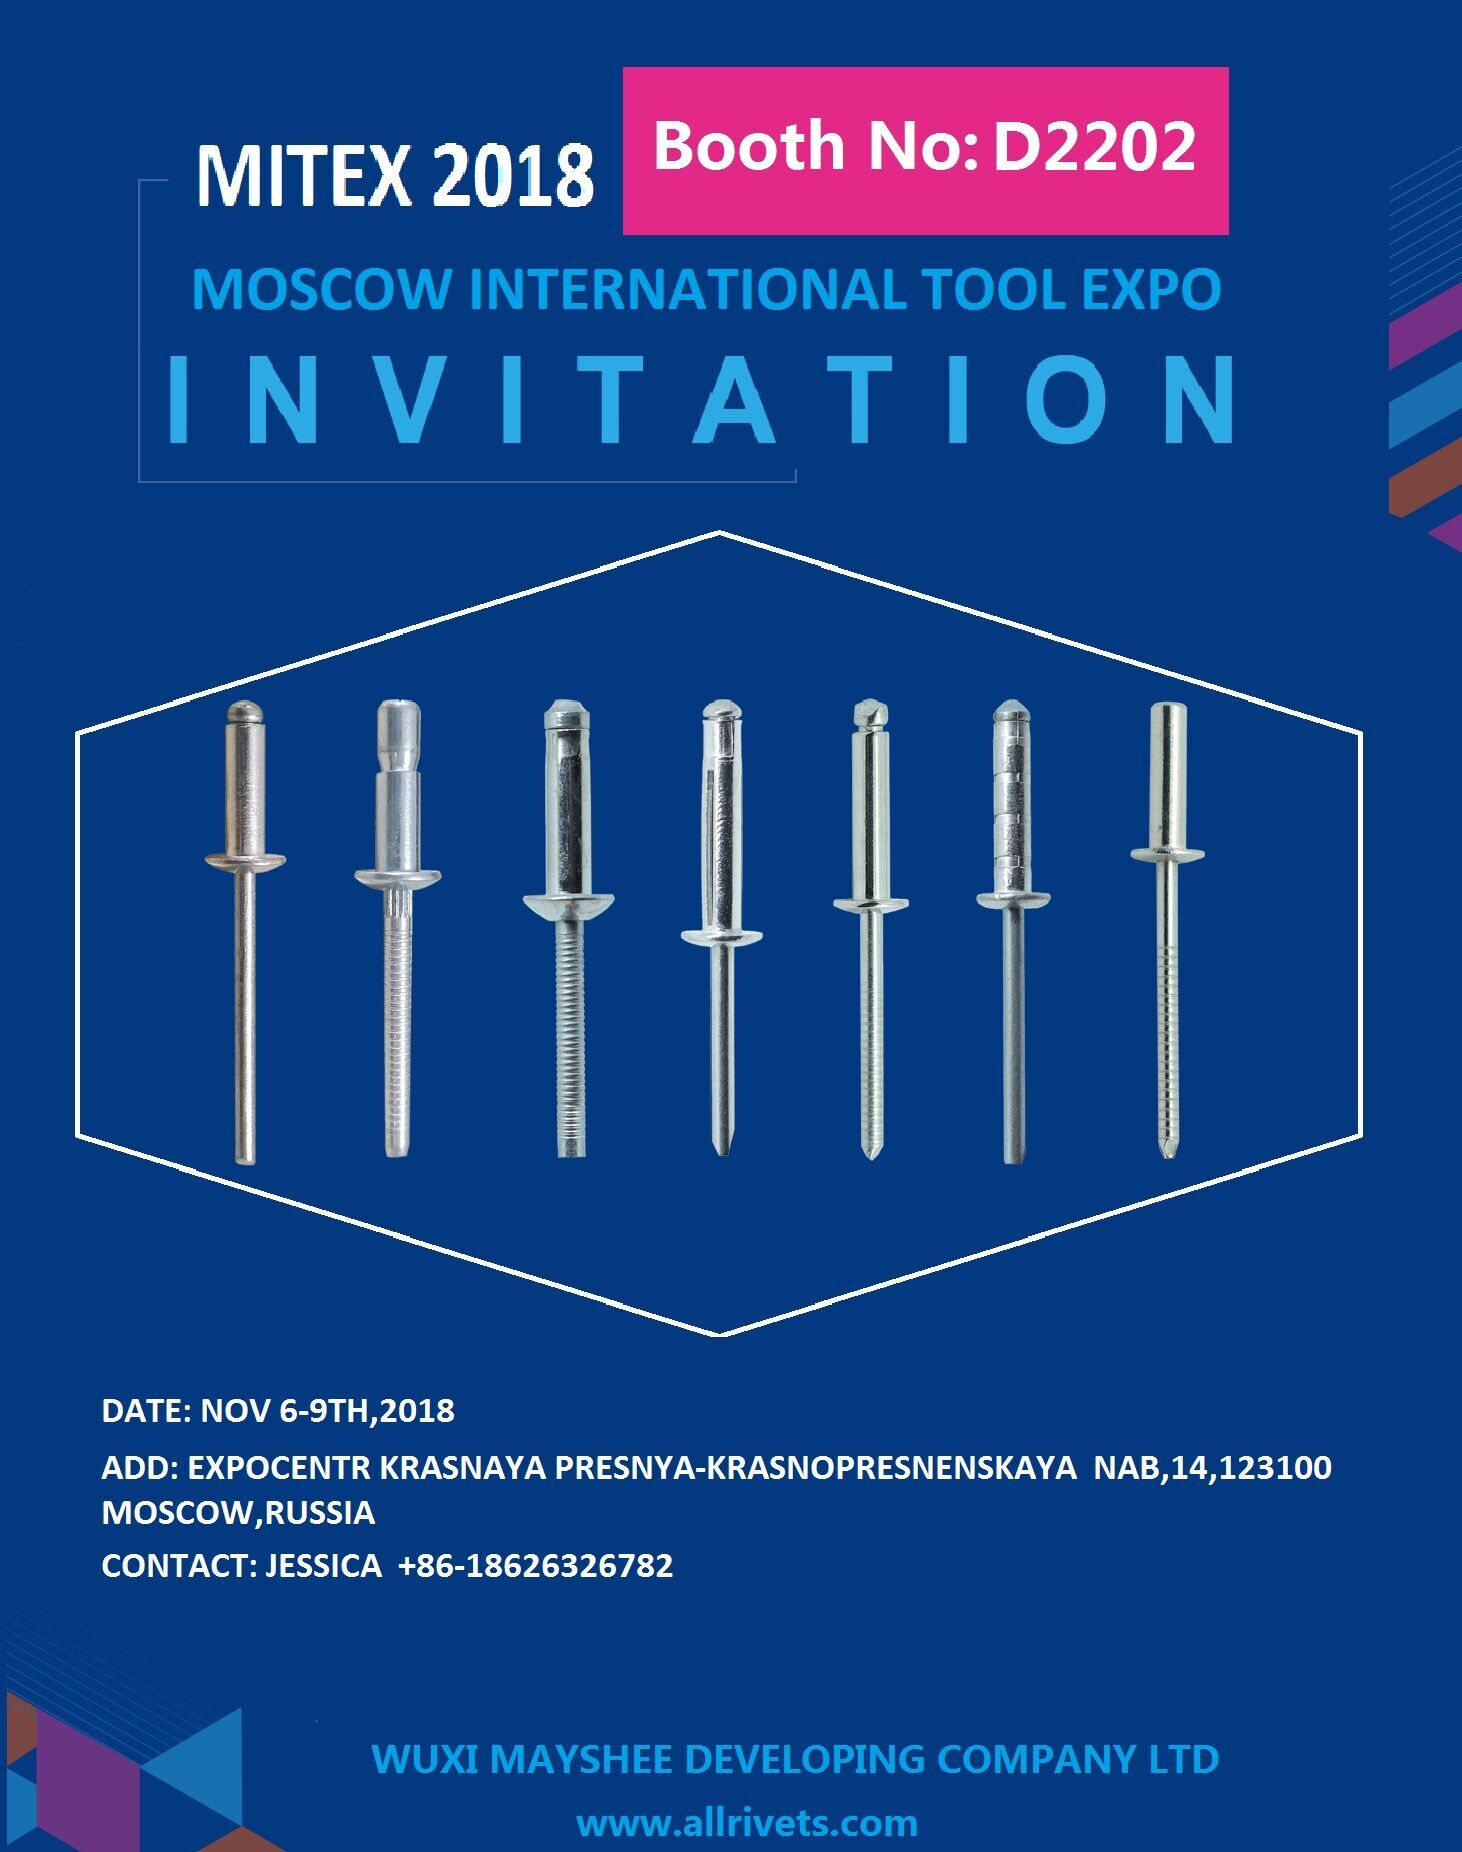 MOSCOW INTERNATIONAL TOOL EXPO